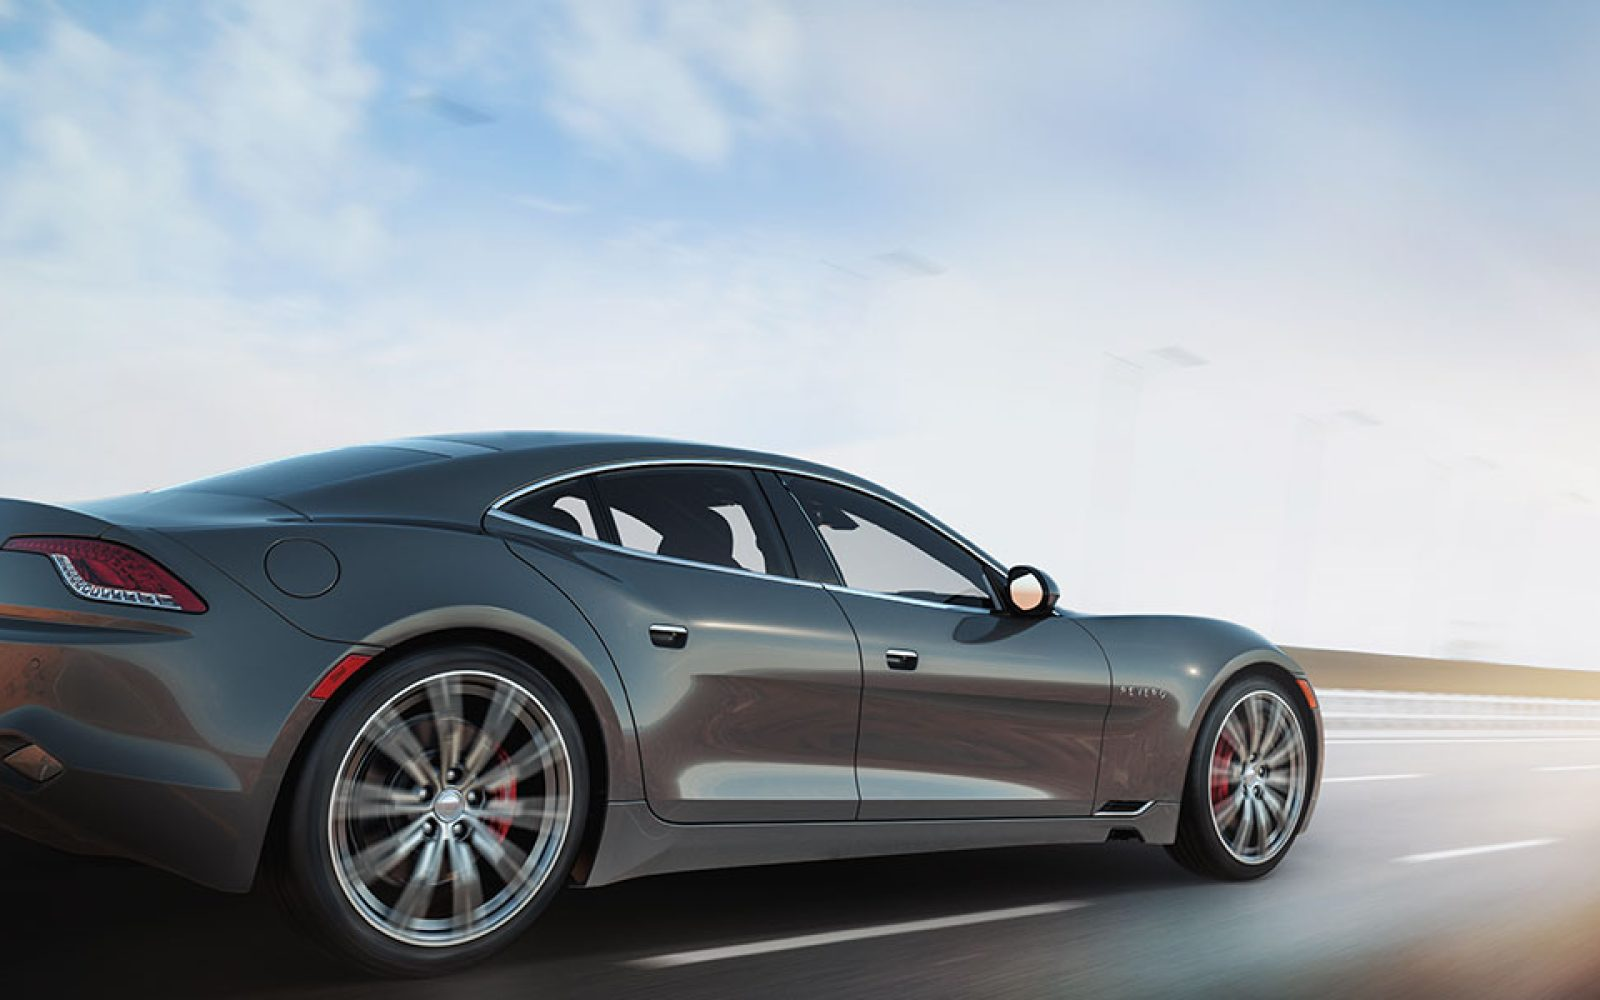 Karma officially launches the Revero: reveals interior, DC fast-charging & $130,000 price tag